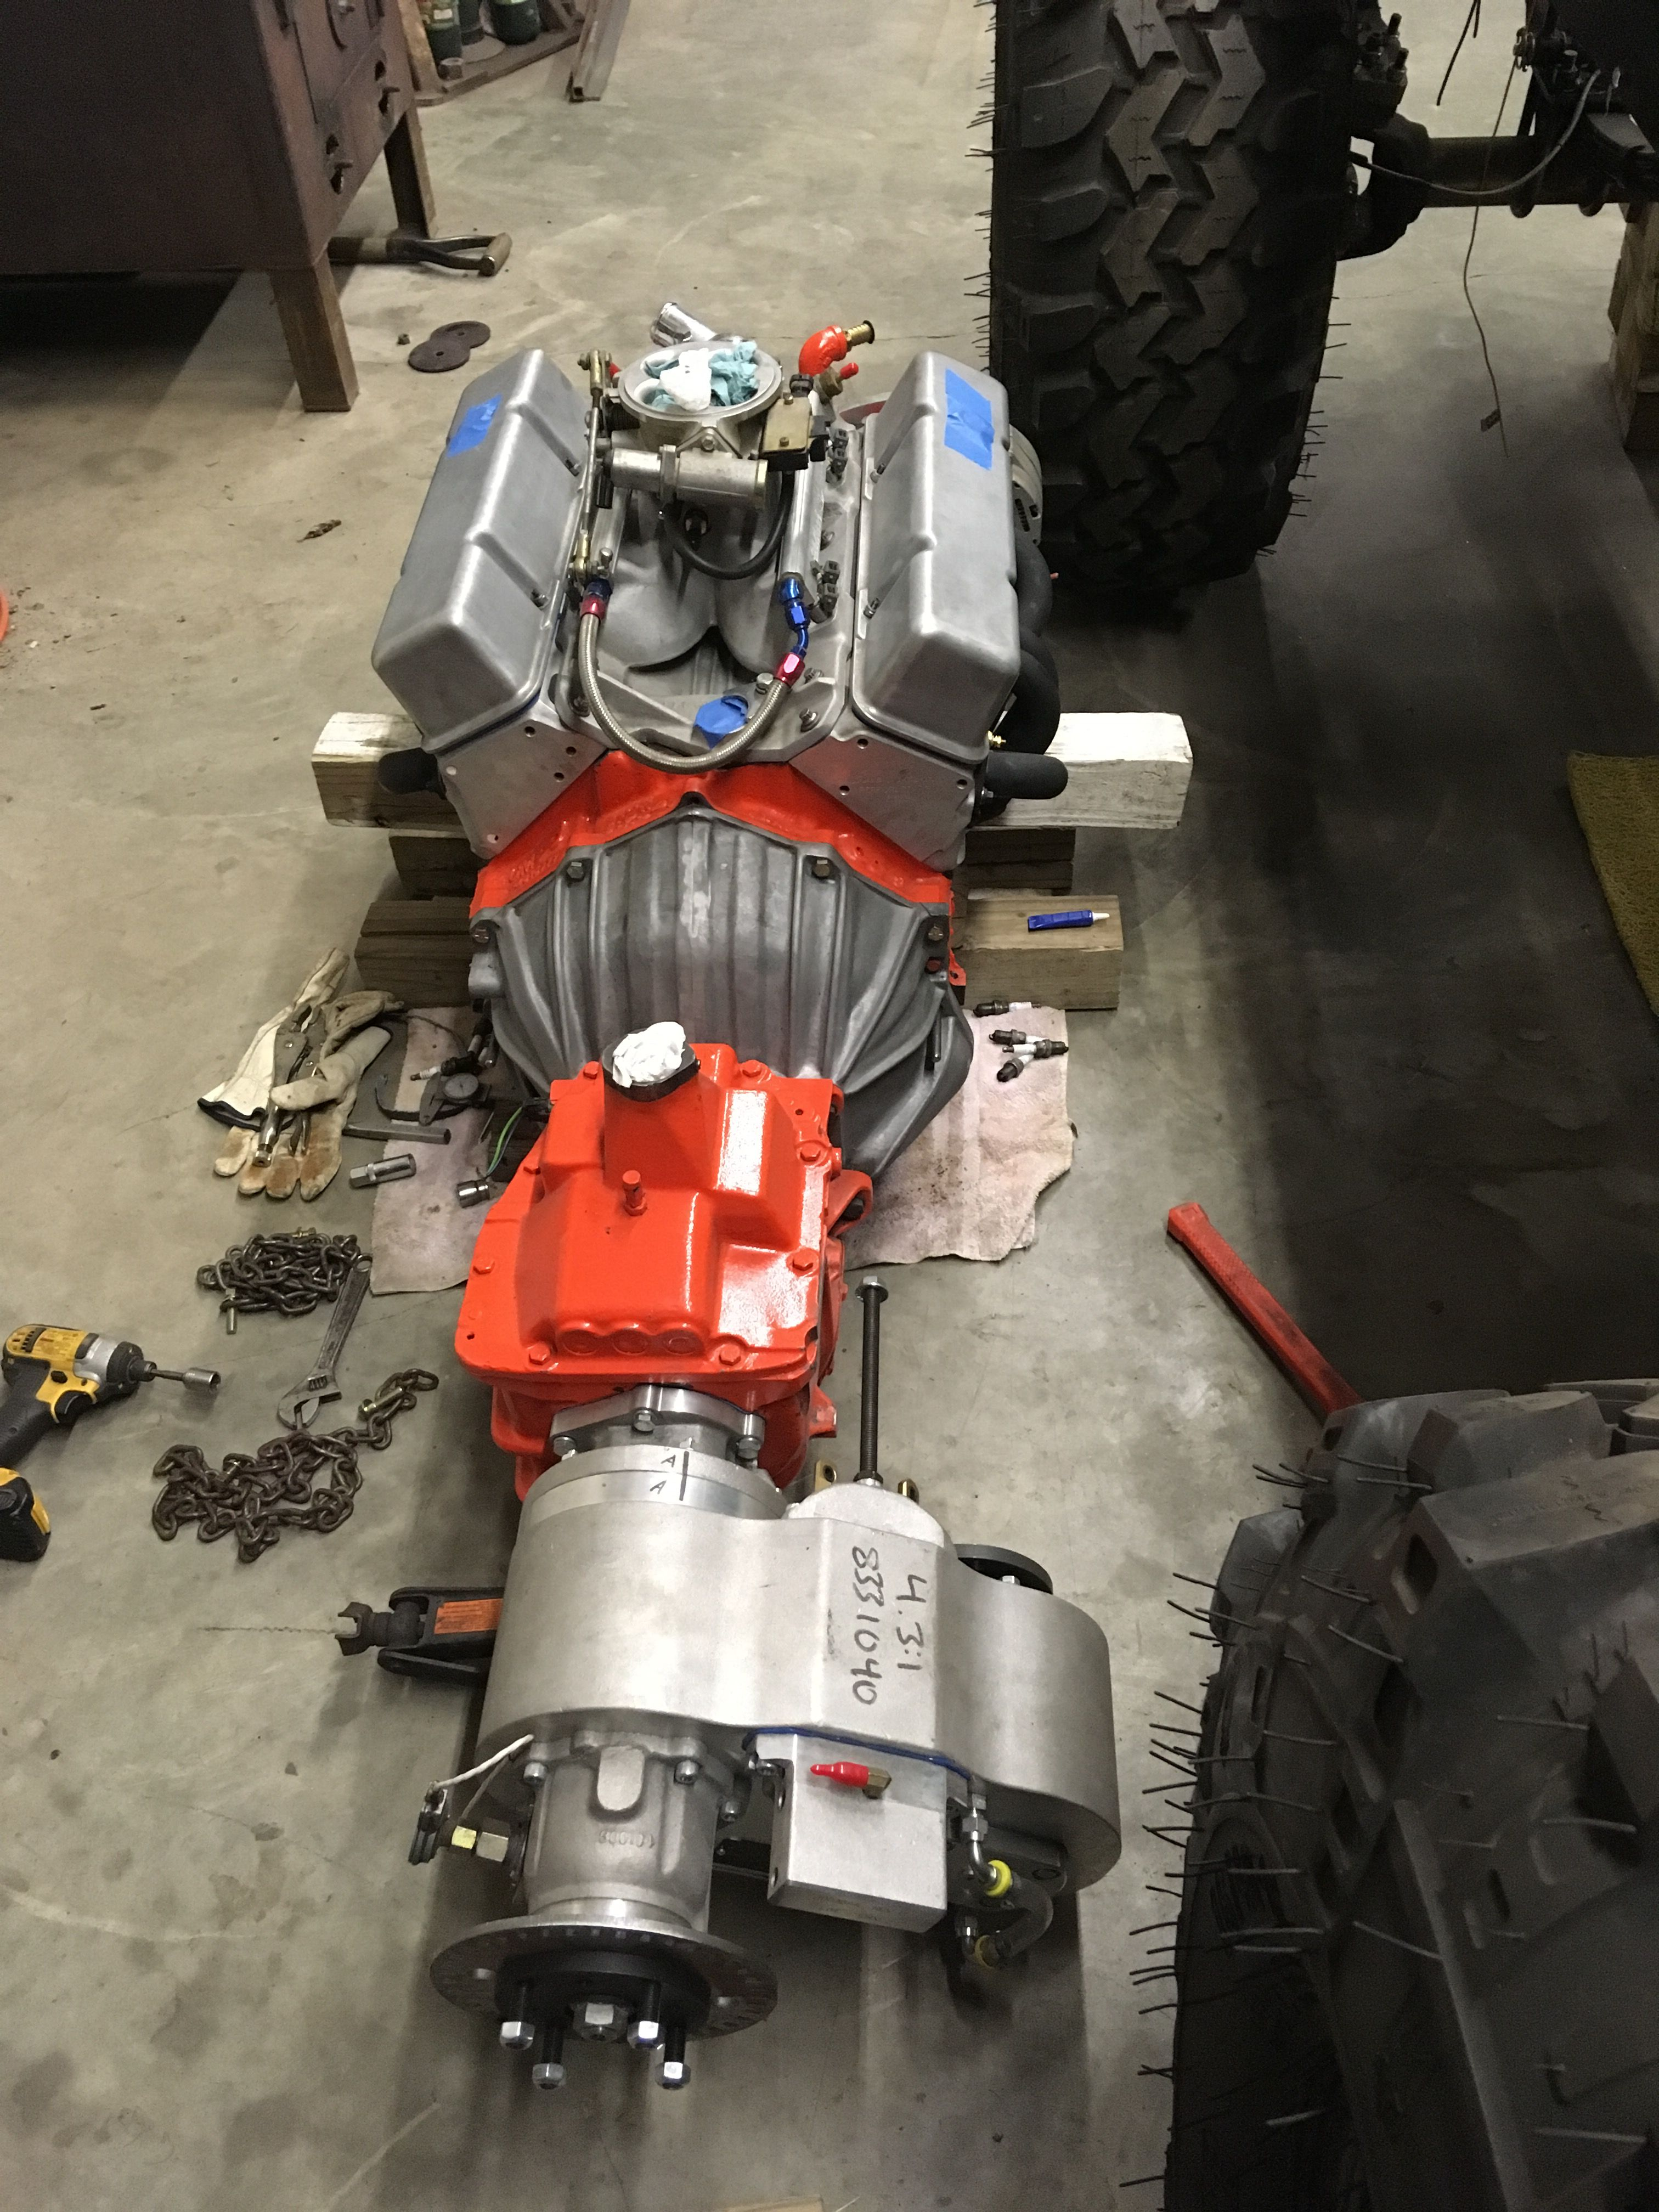 Fuel Injected Sbc V8 383 Stroker Sm465 Atlas Ii Ready To Go Between The Frame Rails Of The Old Cj7 Willys Jeep Jeep Cj7 Jeep